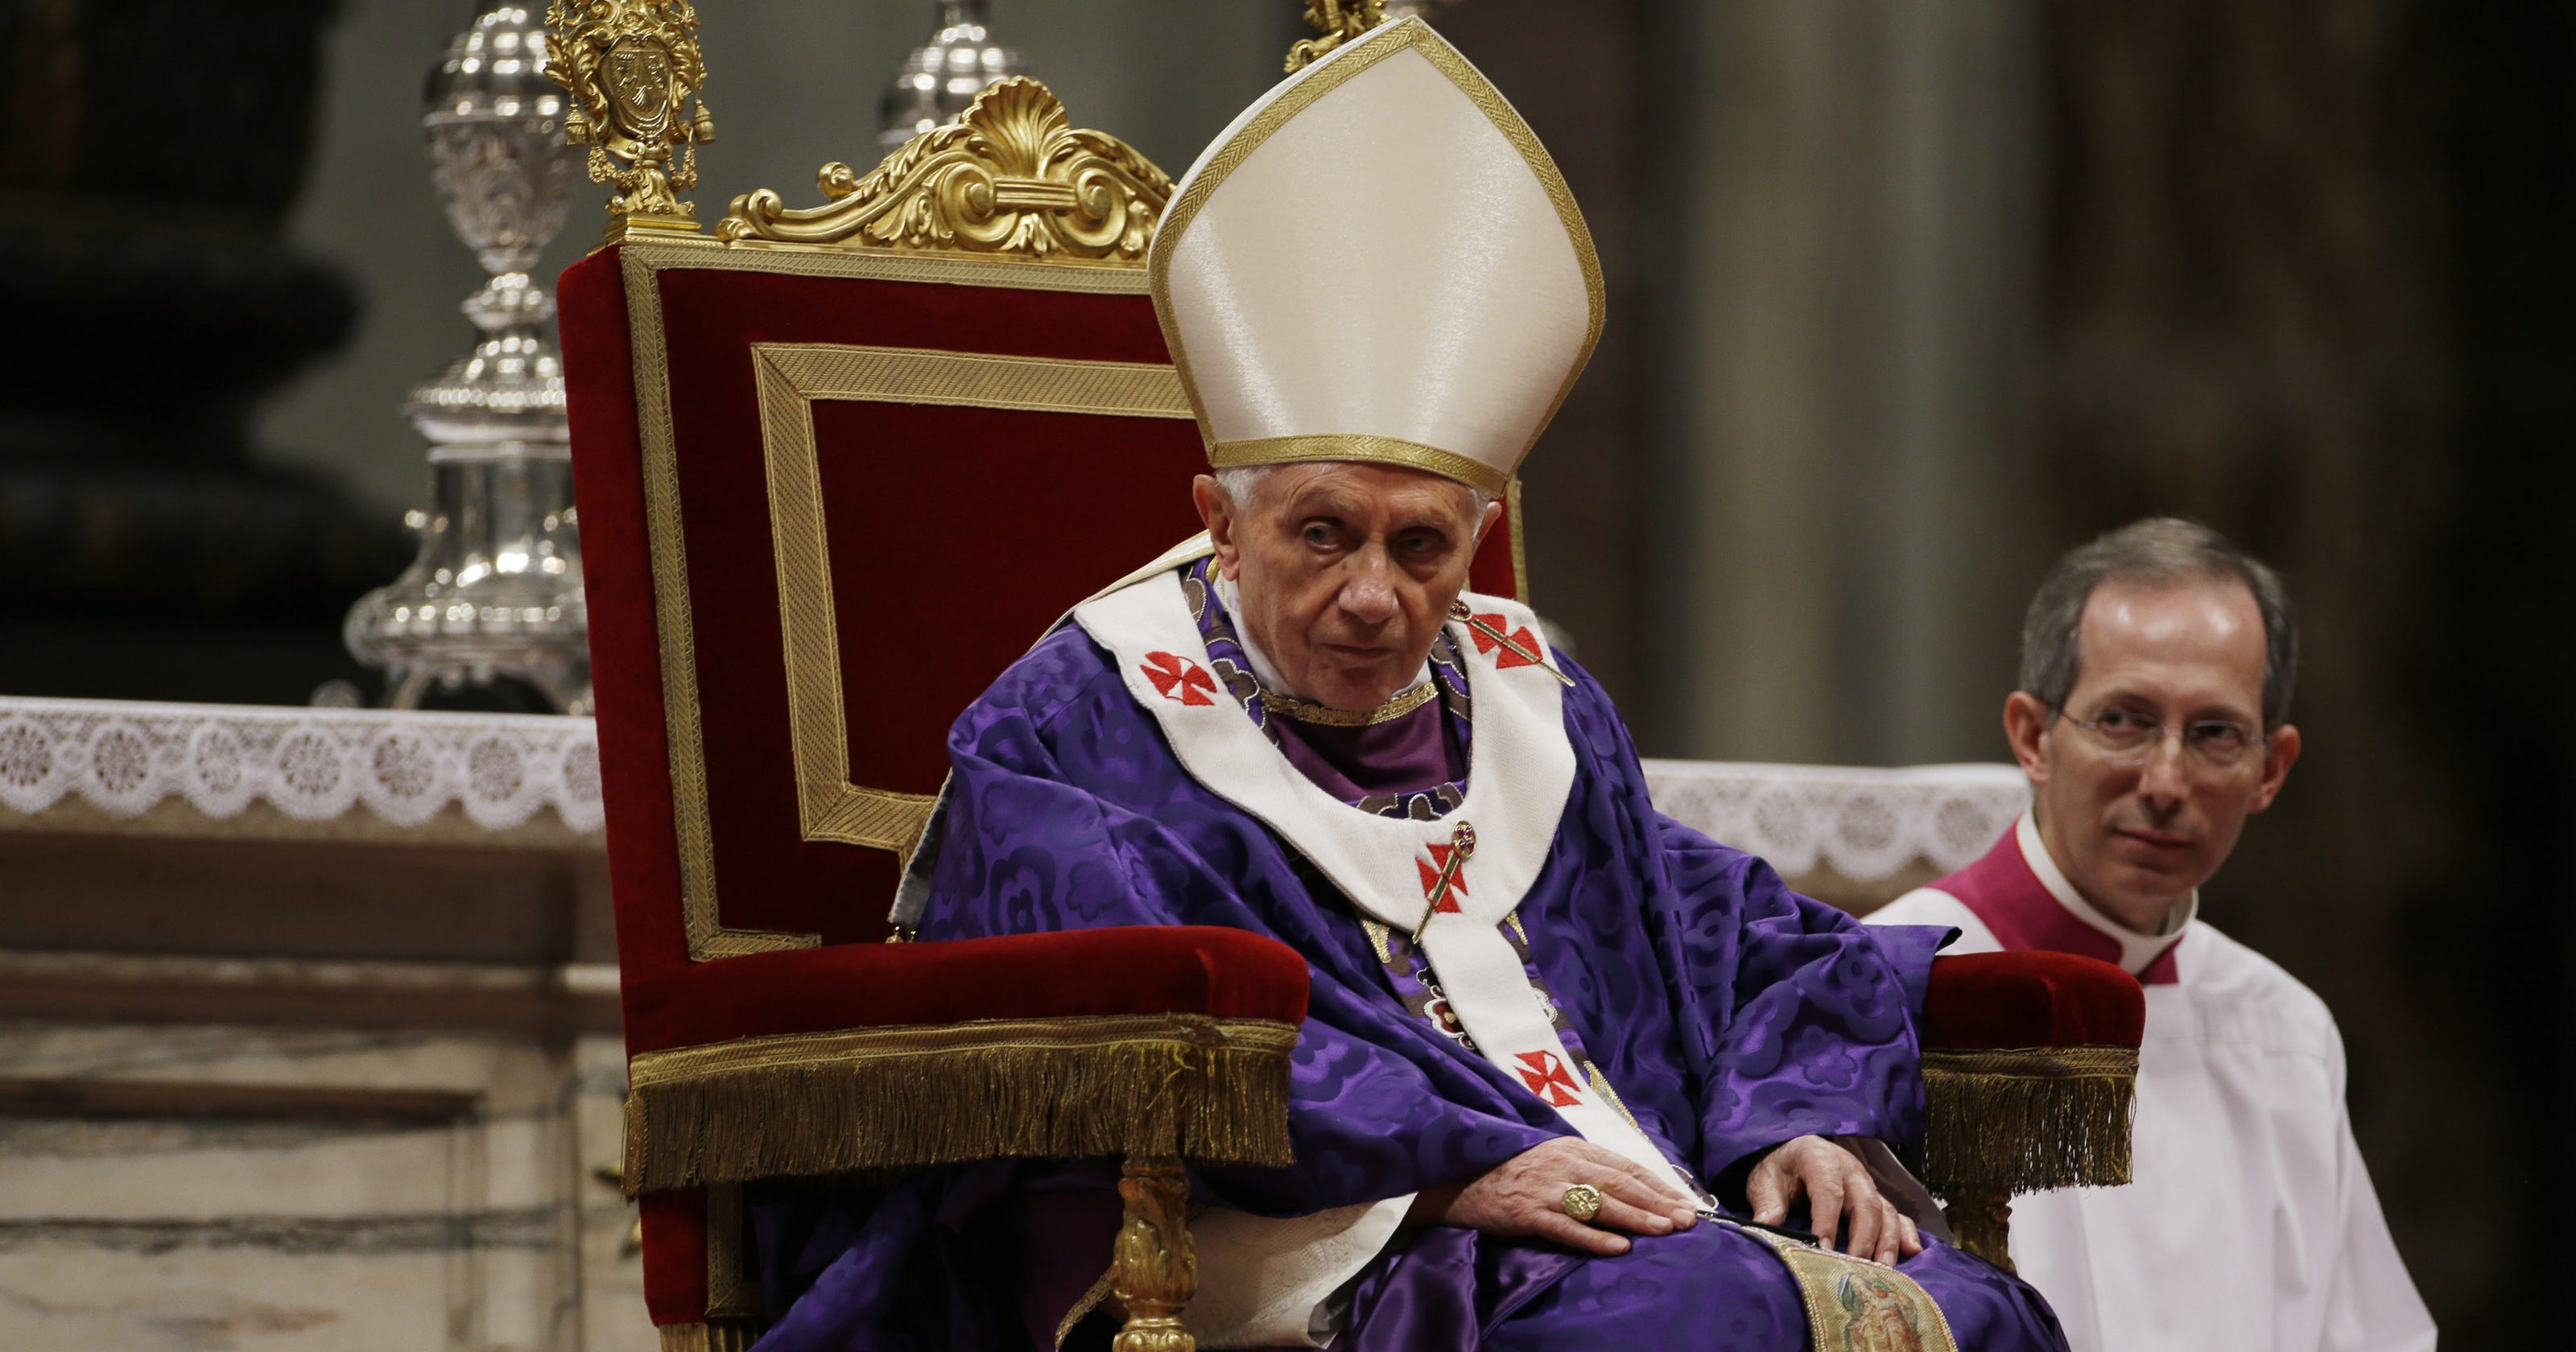 pope a f b gay personals Is pope francis a populist pope update cancel we are celebrating 20 years of serving catholic singles his liberal positions on issues like gay rights.